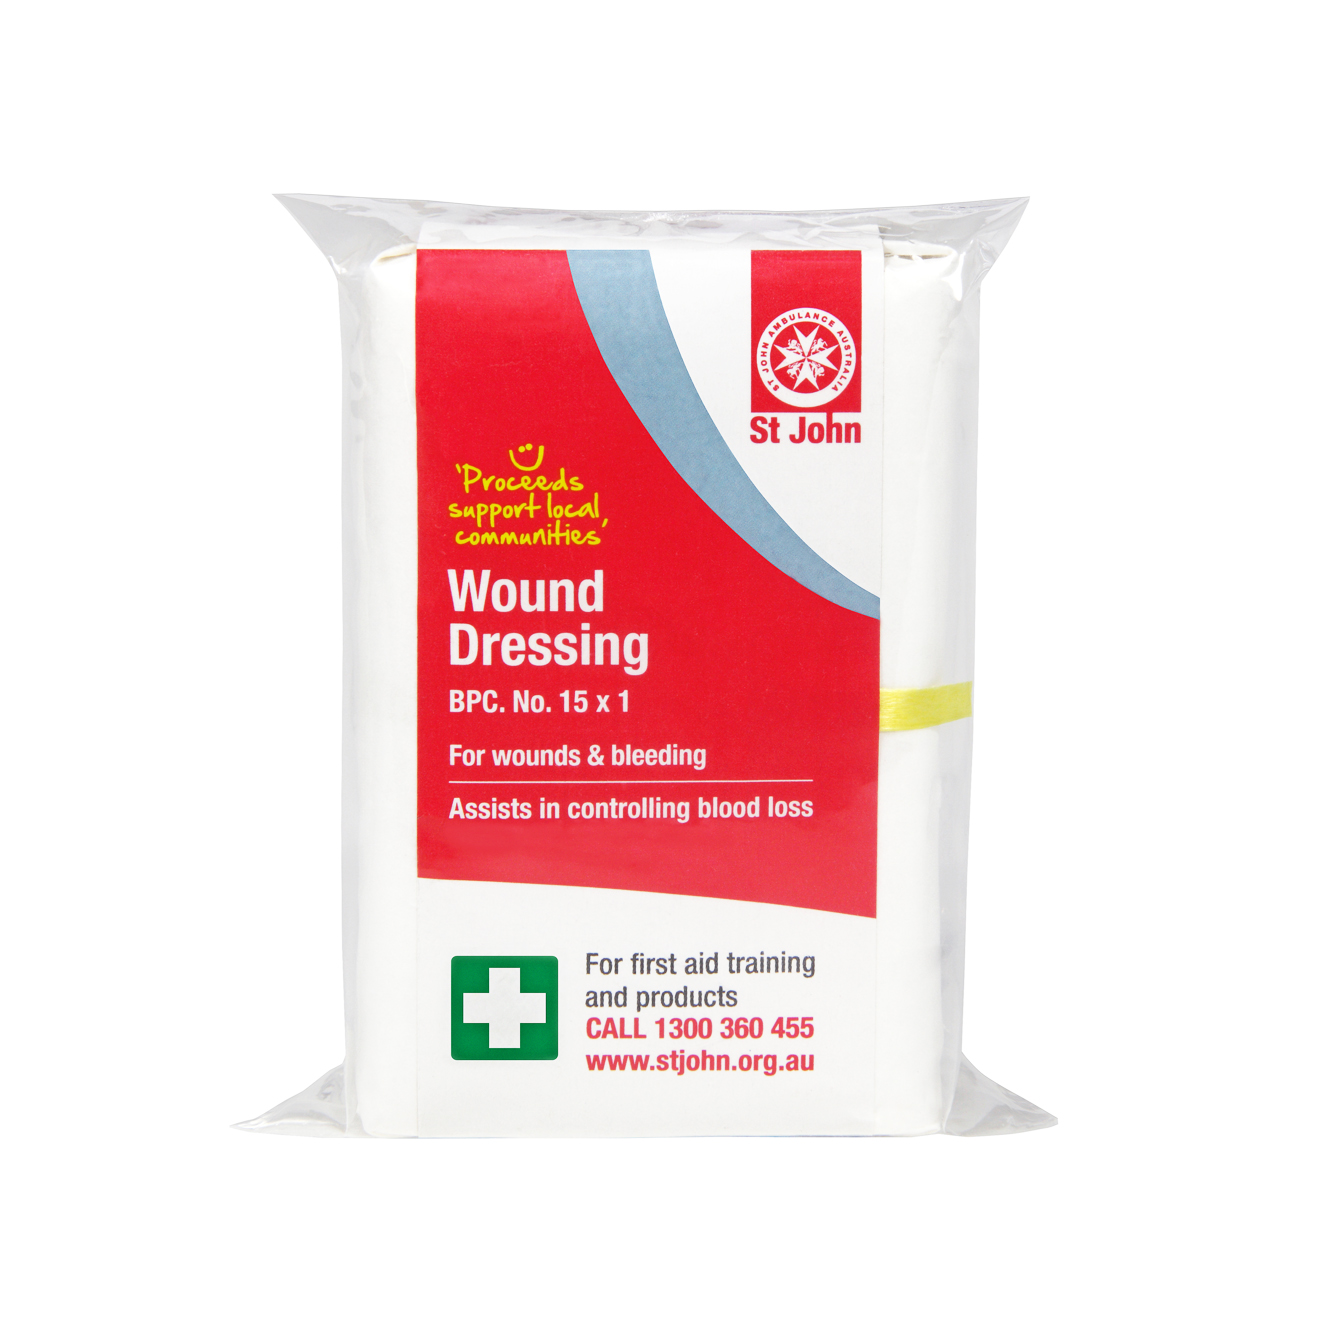 wound dressing st john ambulance australia first aid kits supplies. Black Bedroom Furniture Sets. Home Design Ideas